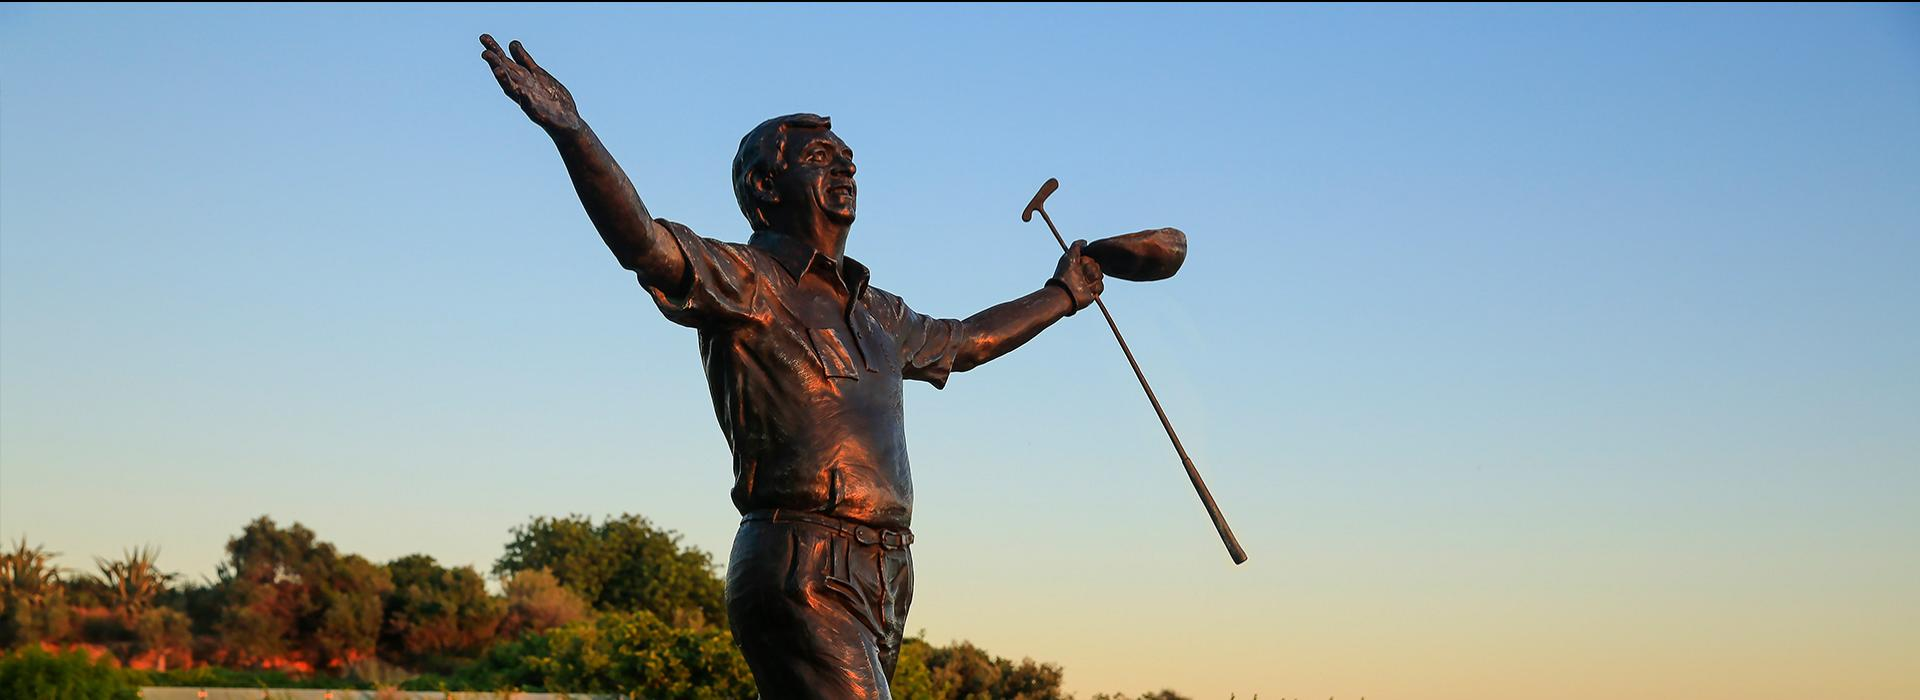 Christy O'Connor Jnr.'s Statue